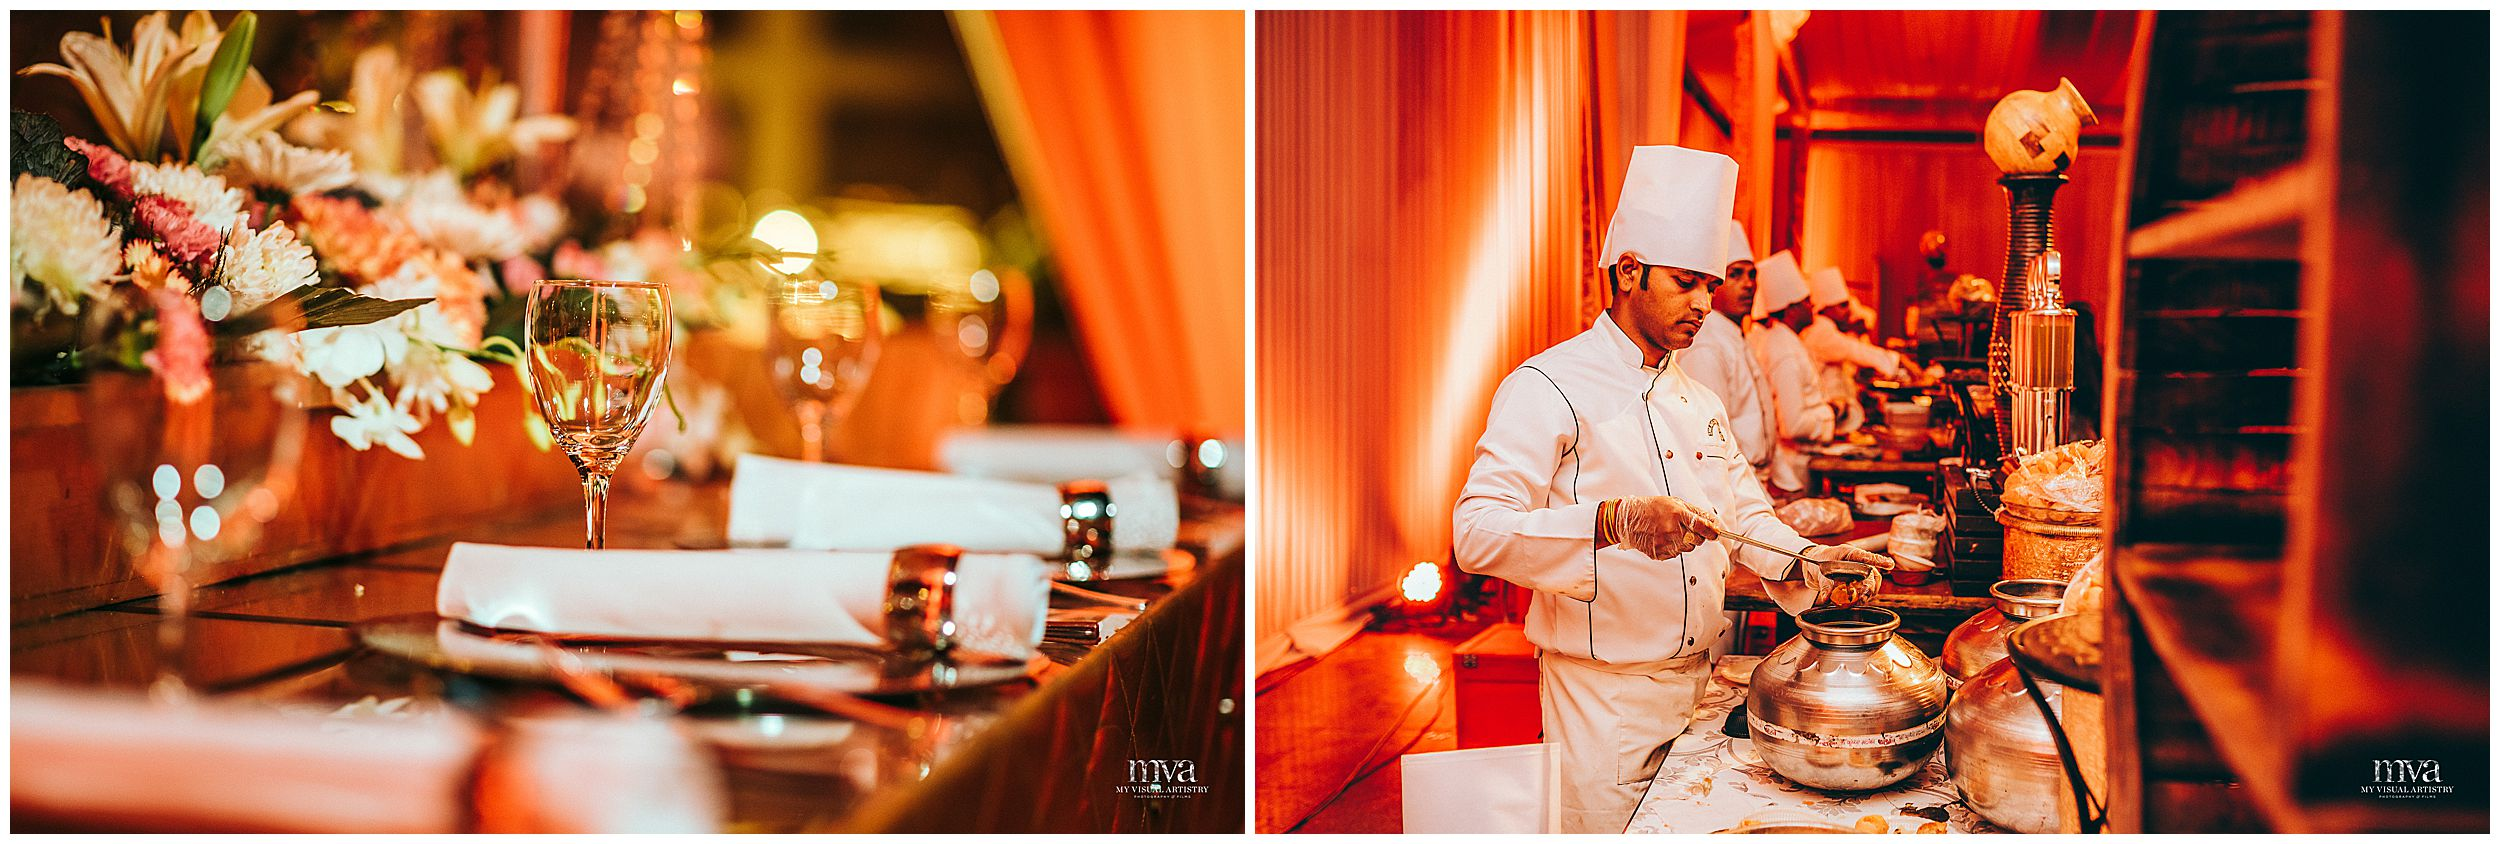 SIDDARTH_SAKSHI_MYVISUALARTISTRY_WEDDING_PHOTOGRAPHY_MVA_EROSHANGRILA_DELHI_0040.jpg